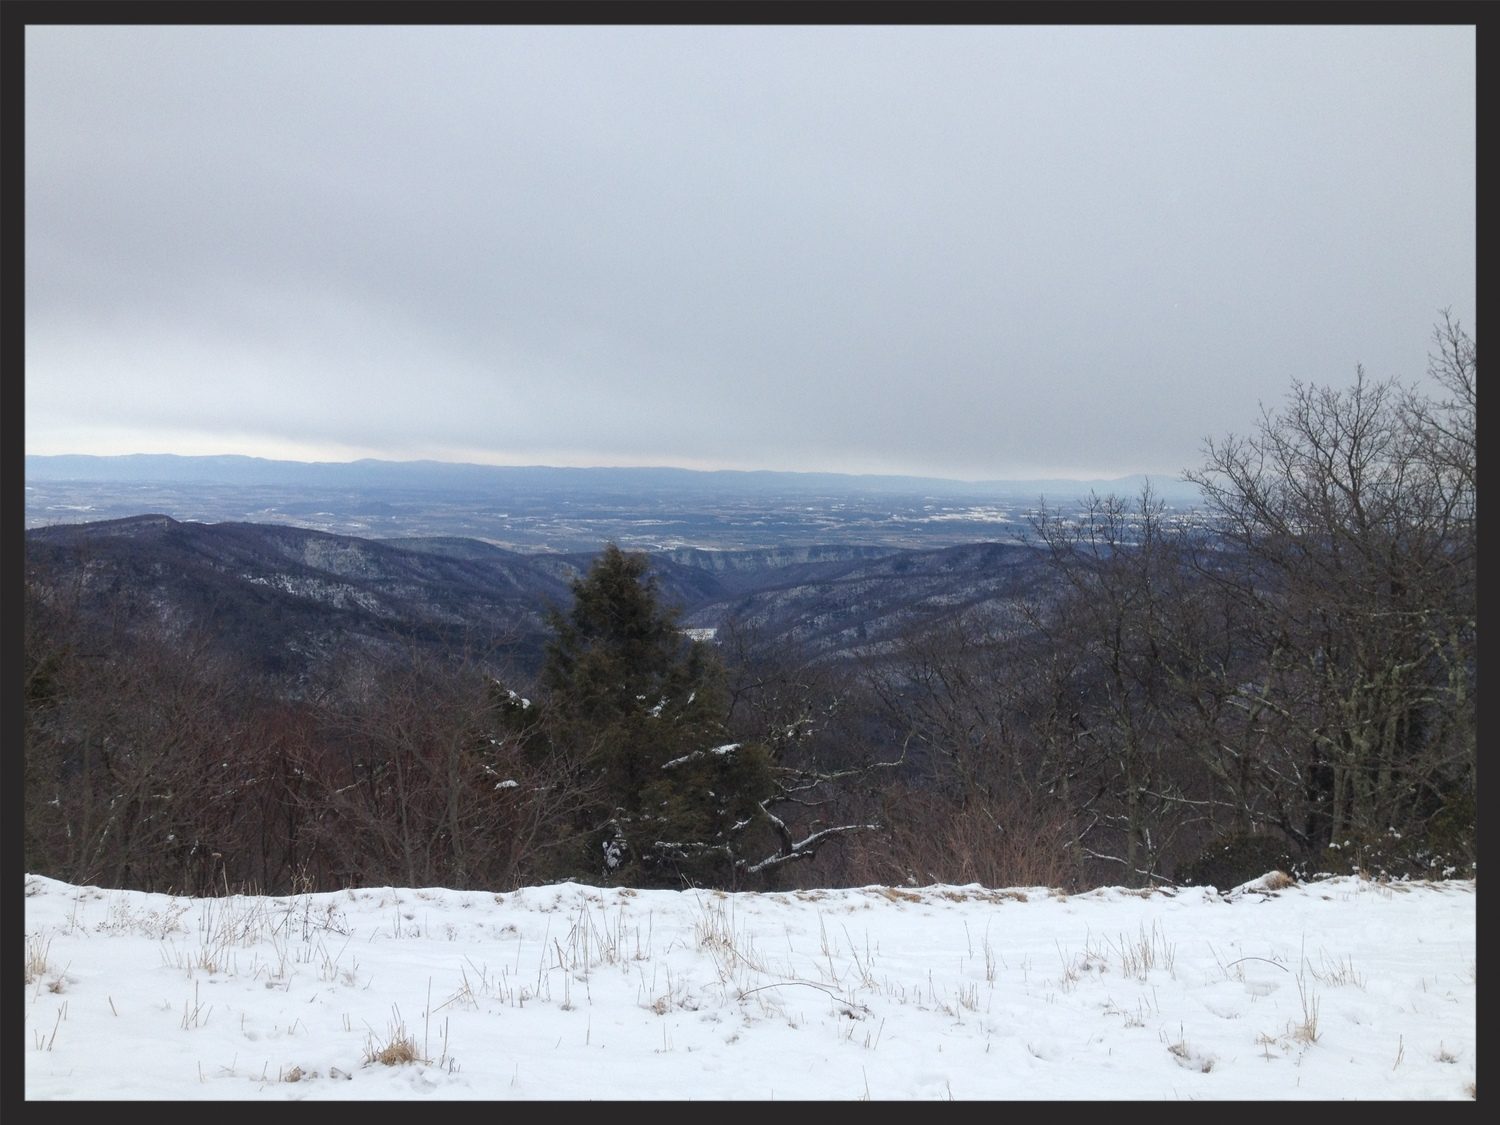 Hone quarry basin below and the valley off in the distance. View from flagpole knob